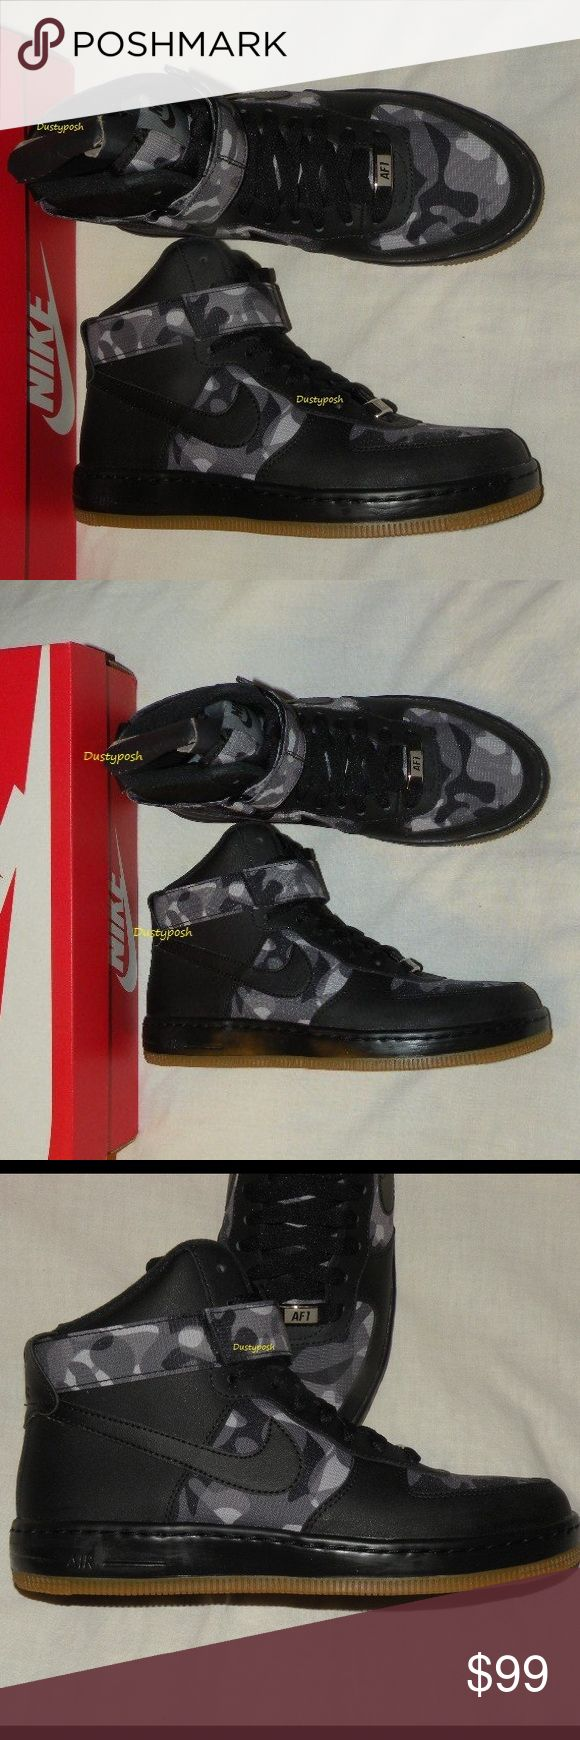 Nike AF1 Ultra Force Mid Prt Air Force One Black Women's Nike Air Force One Ultra Force Mid Prt Sneakers. These awesome Black with black gray camouflage sections our new never worn with box. Selling not trading. Women's size 7 Bundle with thigh high socks or over the knee socks for extra savings. Nike Shoes Athletic Shoes